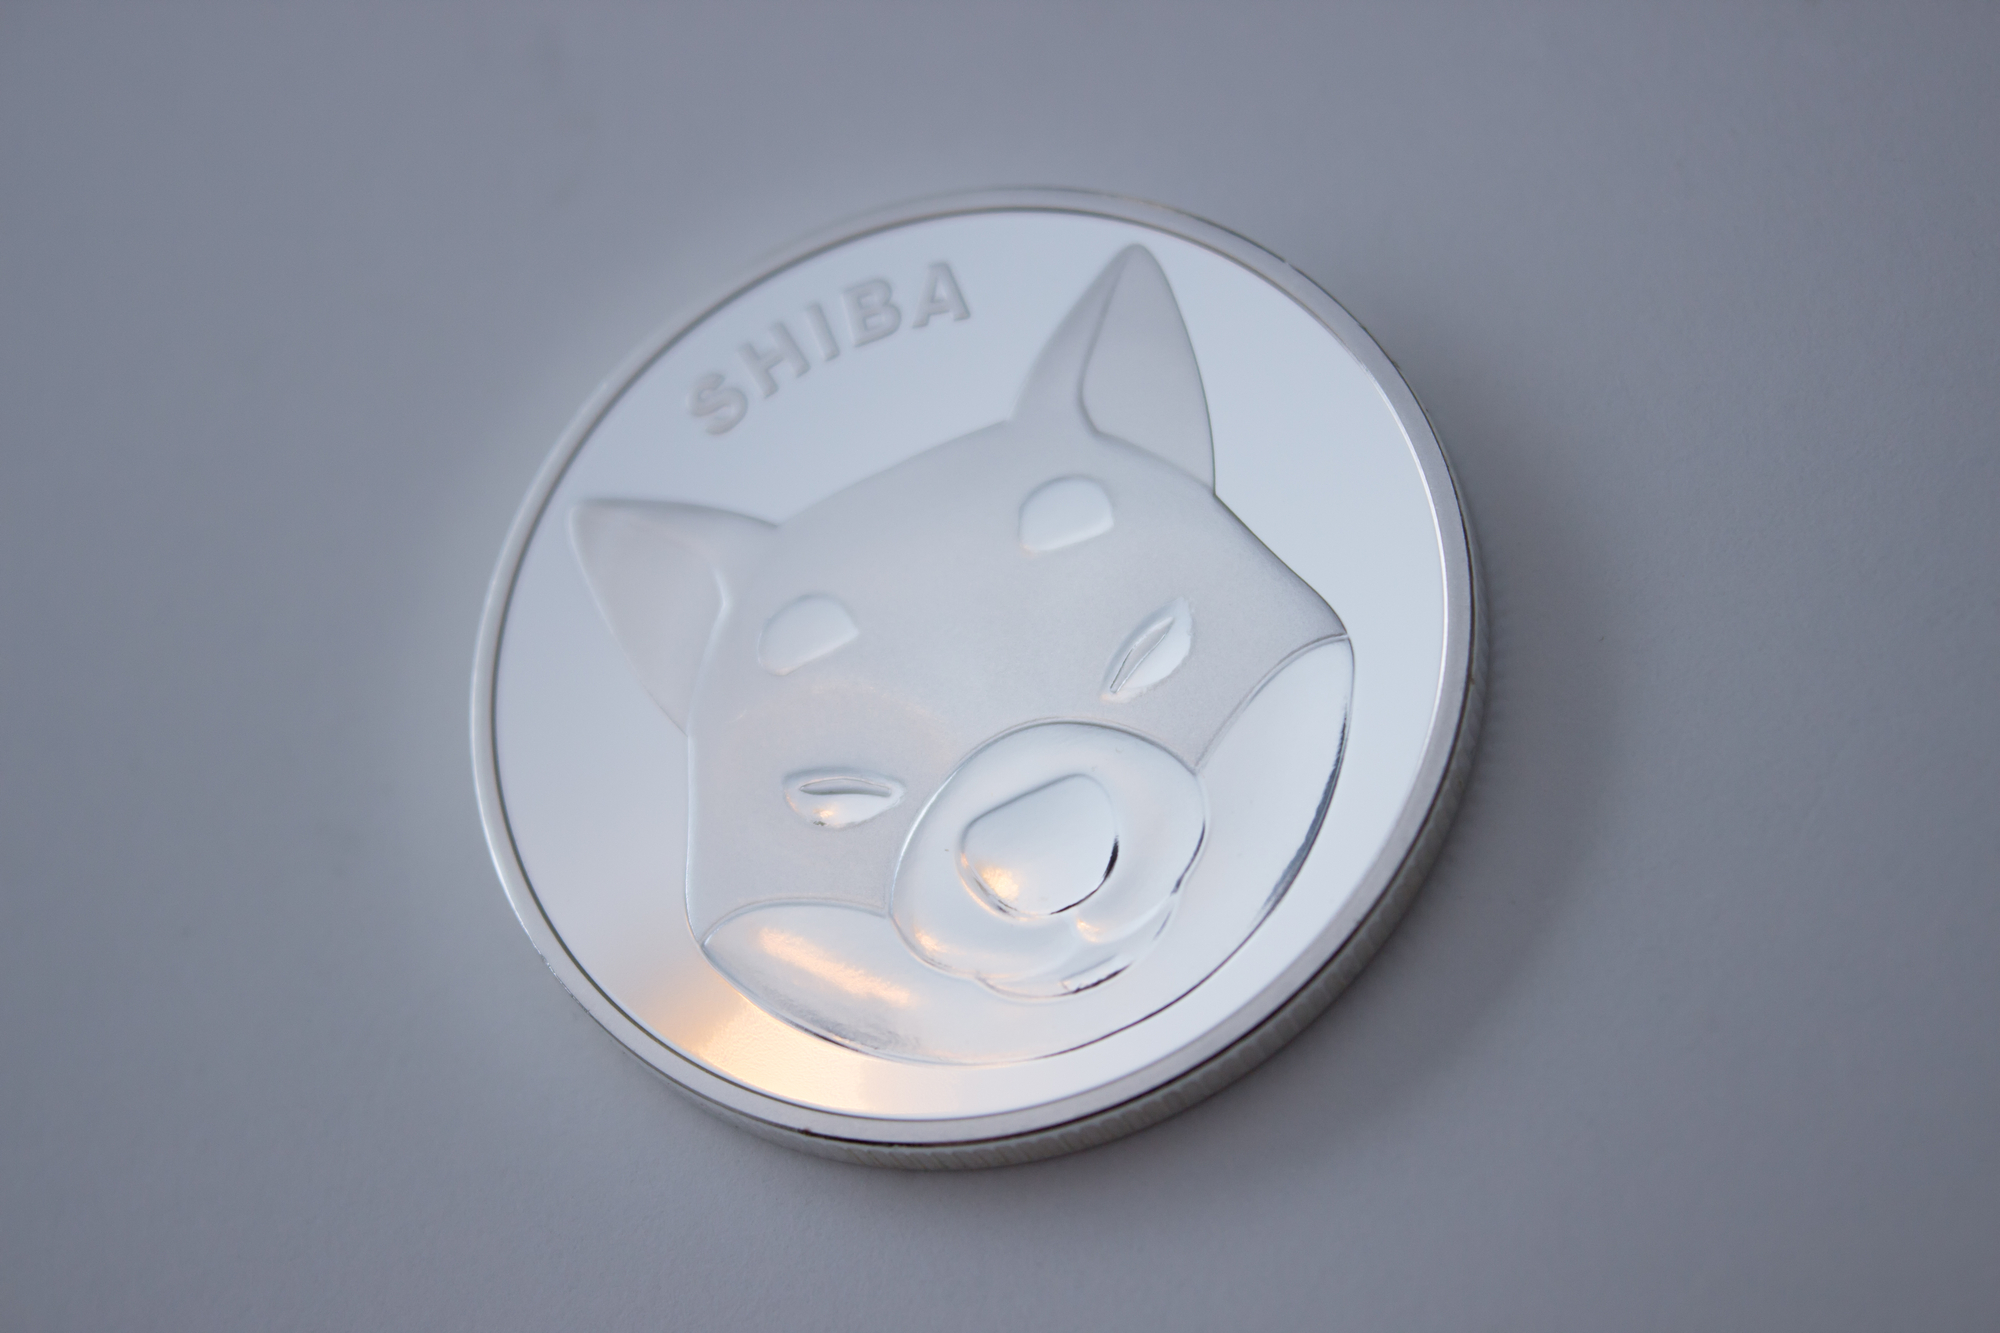 Shiba Inu Is Losing Ground While Bitcoin Tries To Settle Below $46,000